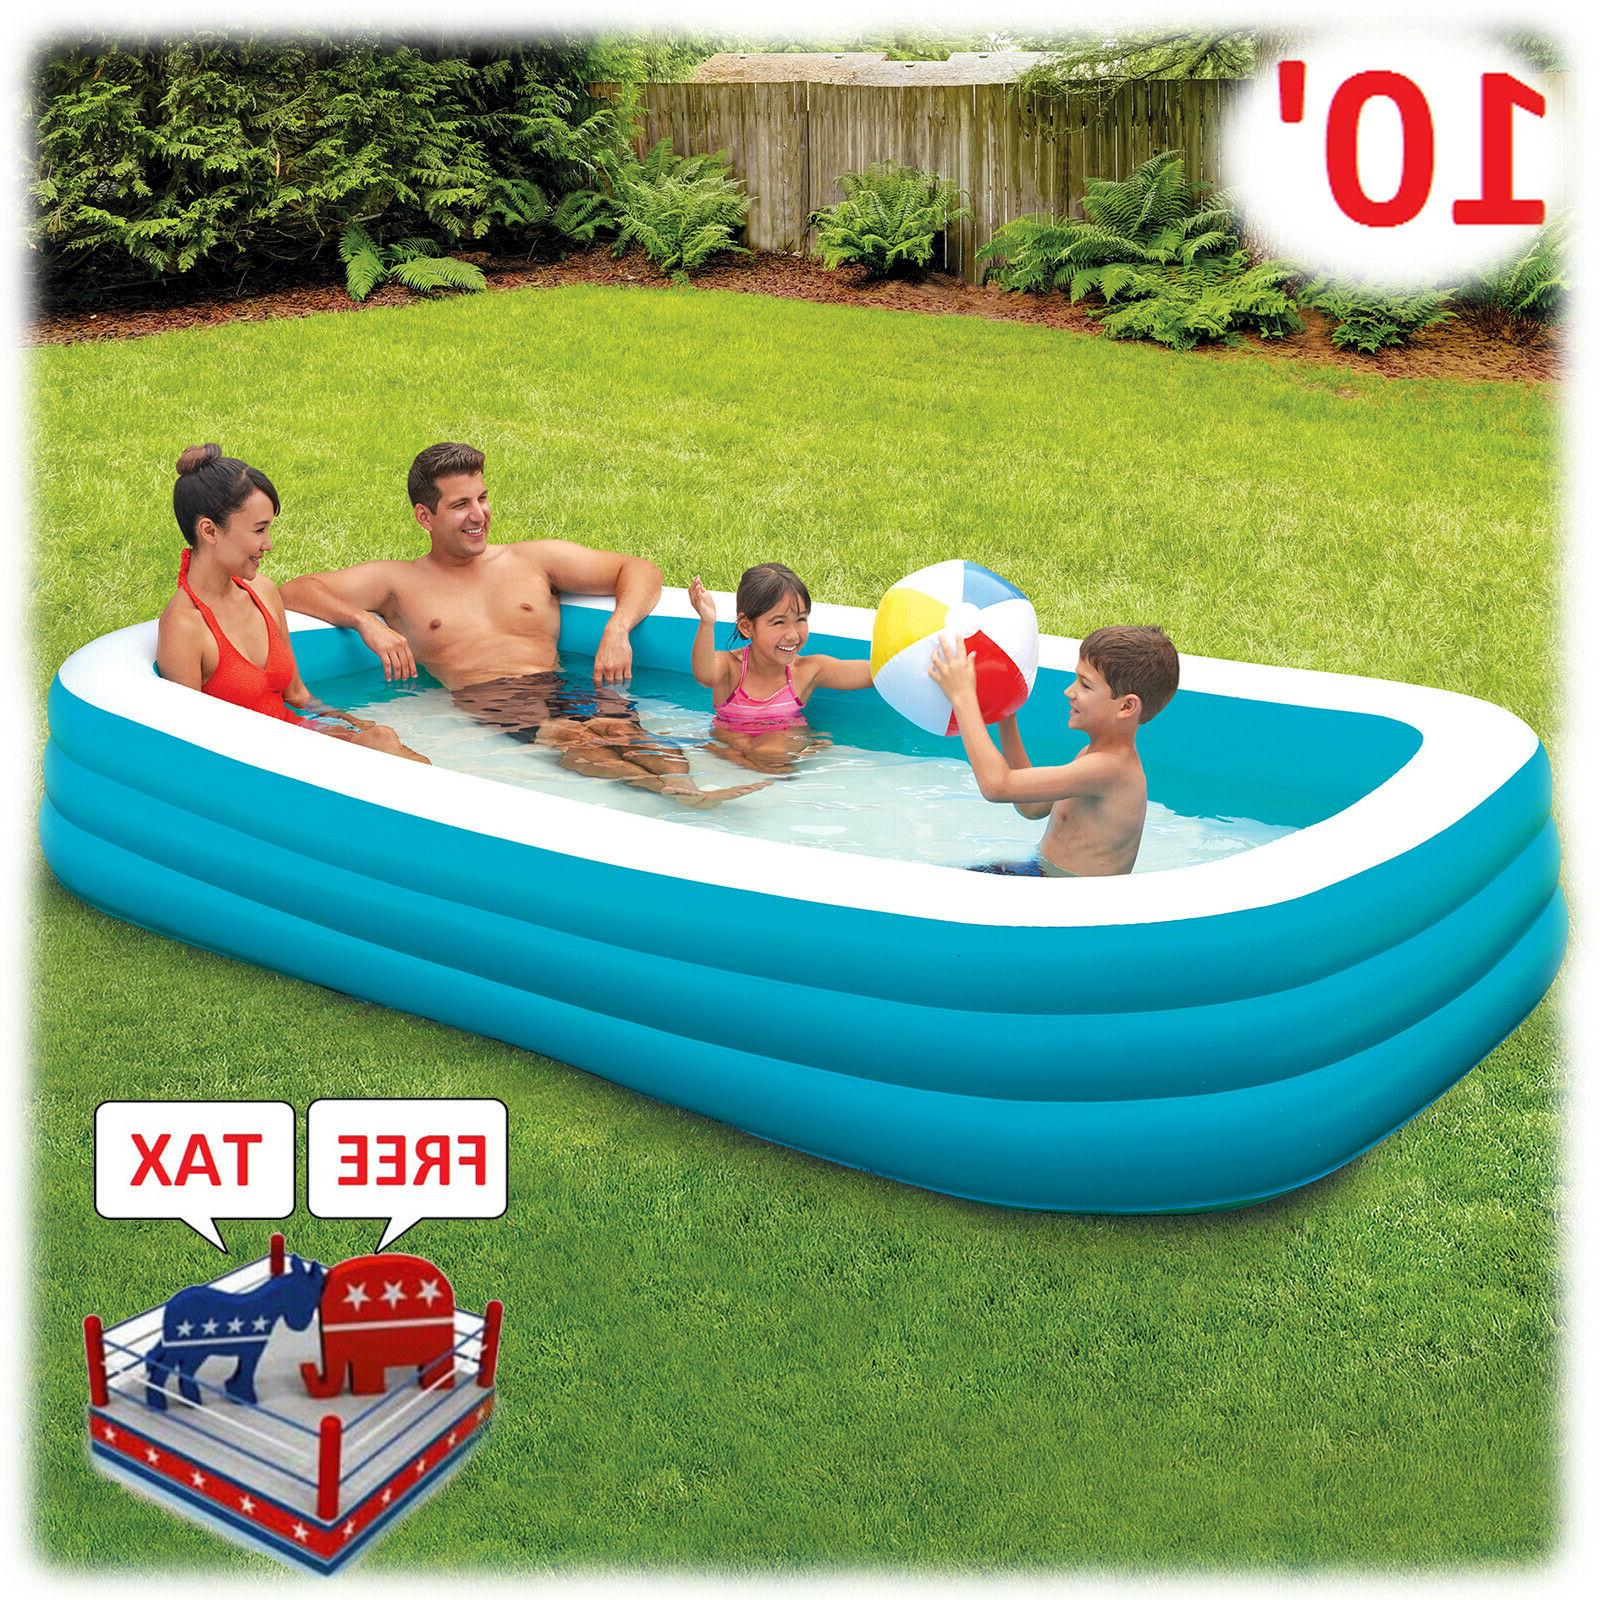 Inflatable Pool Lounger Kid Adult Family Ground Swim Backyar